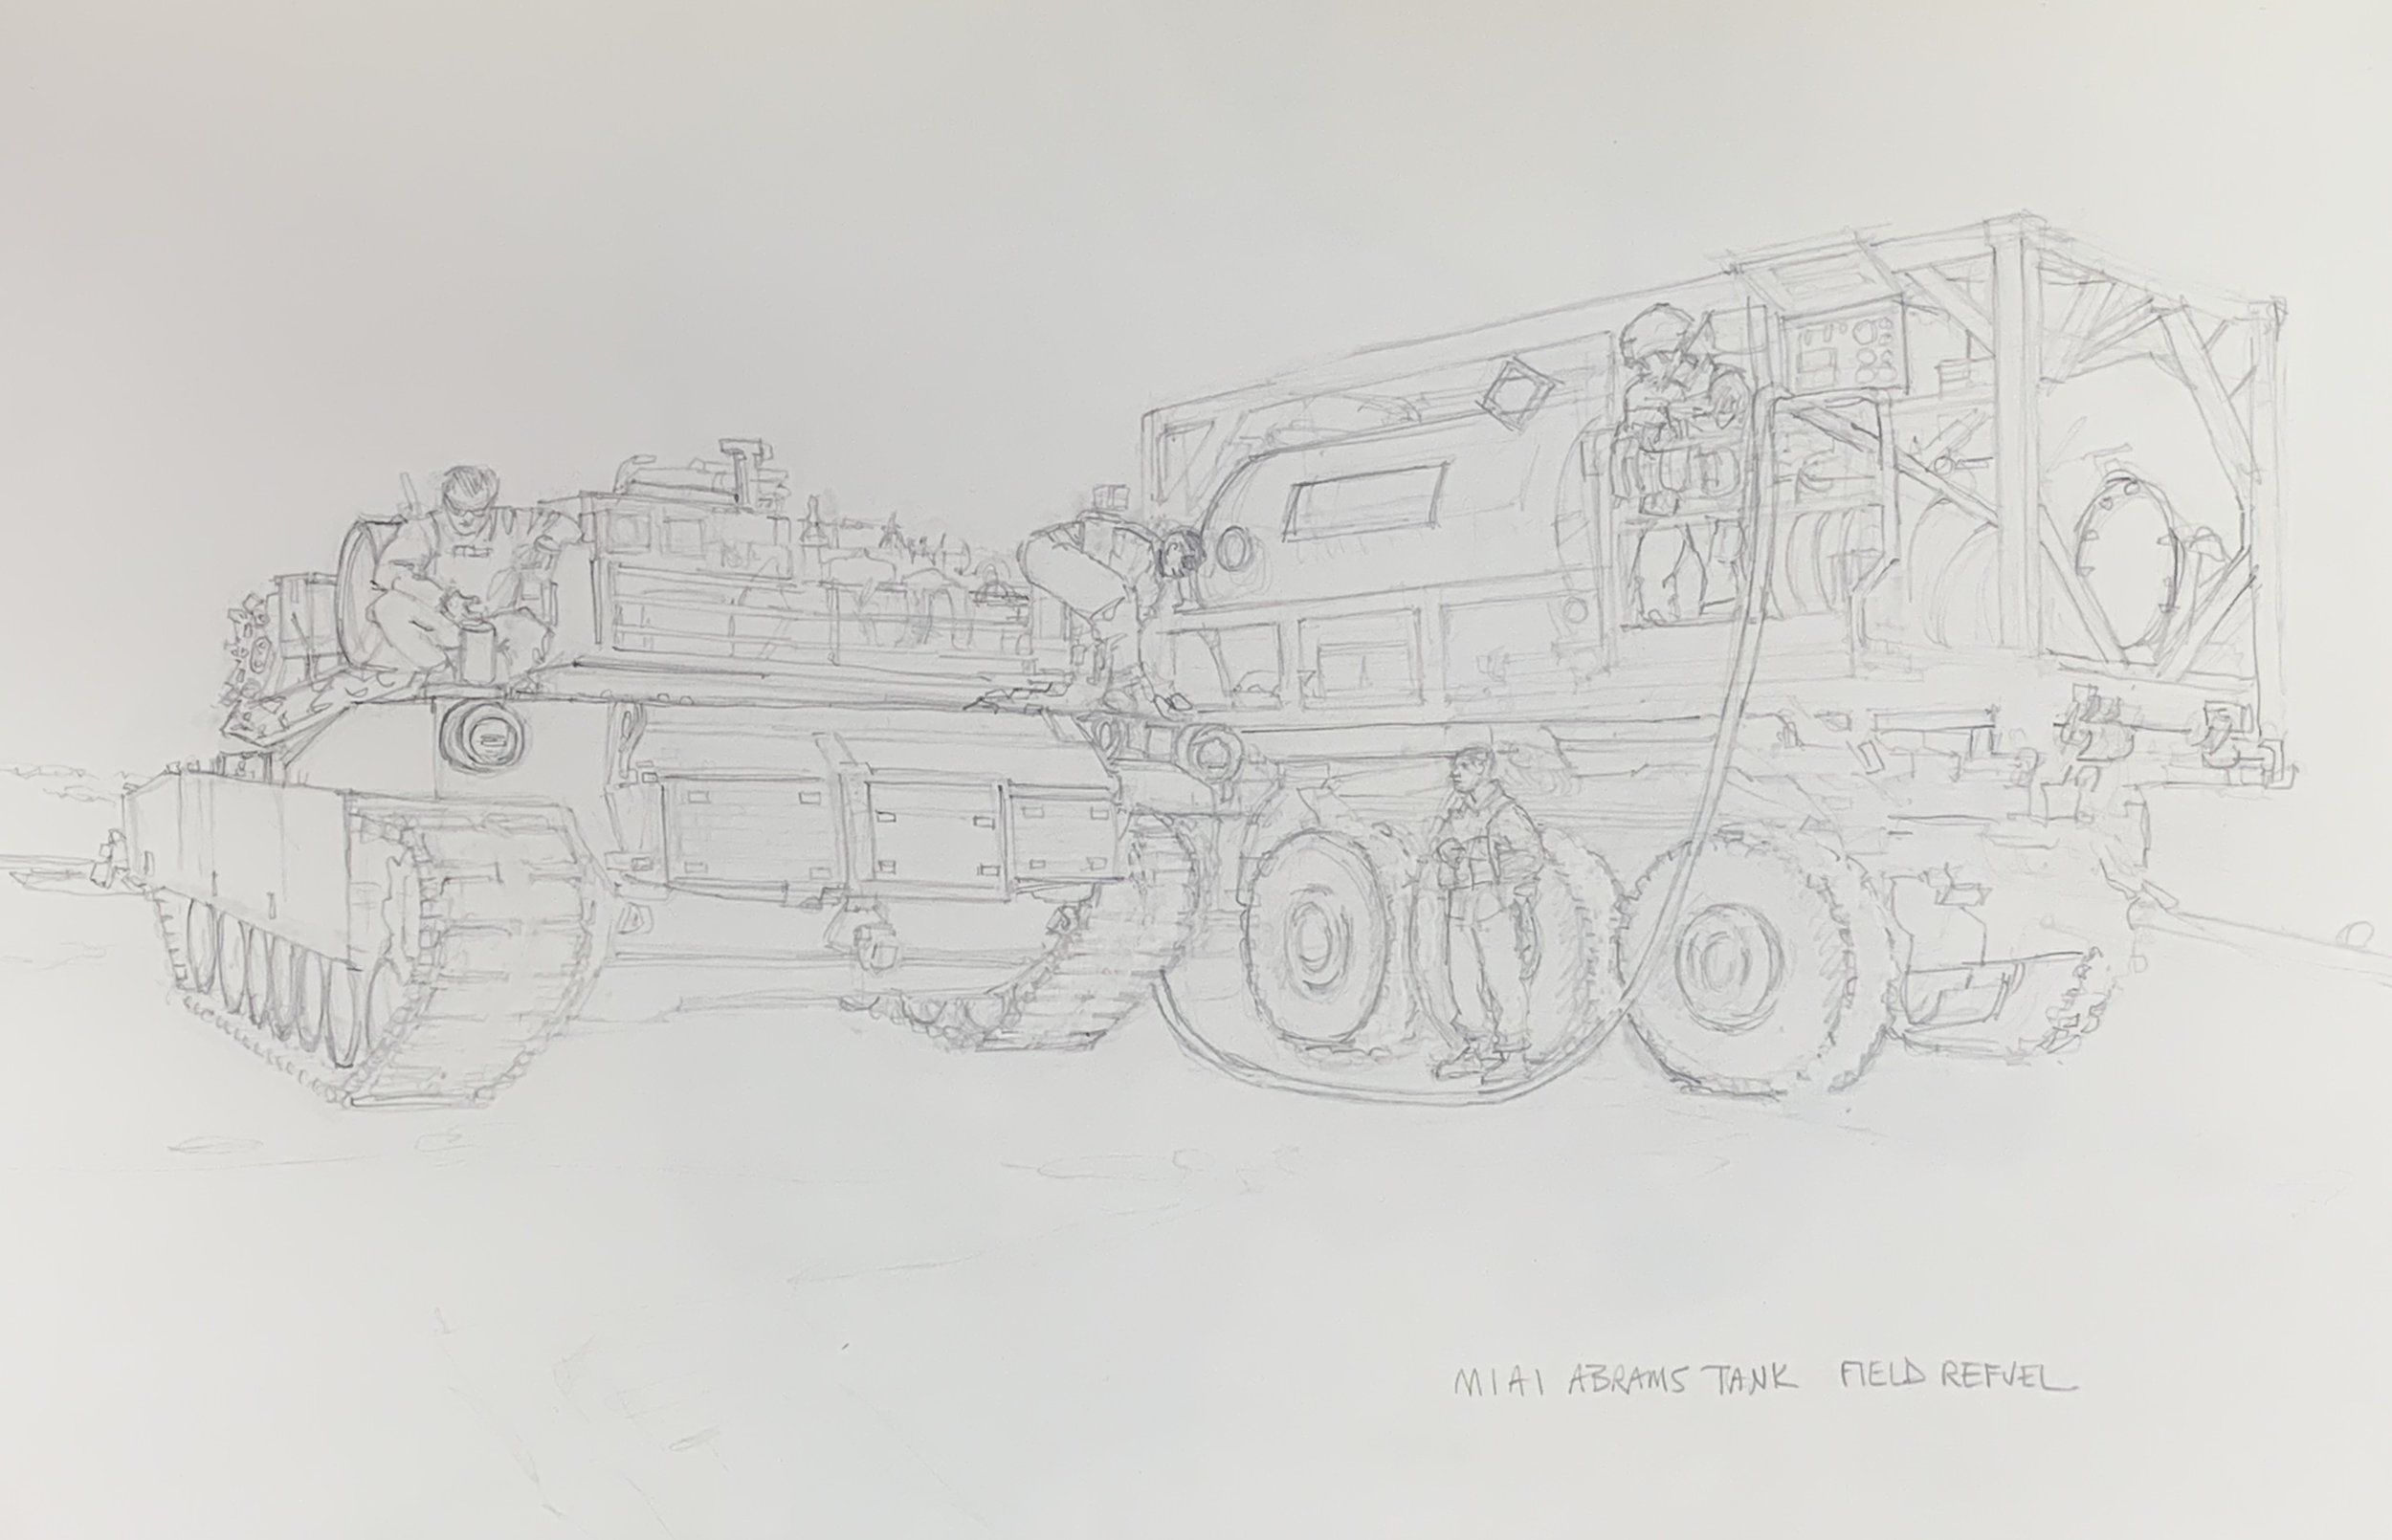 Sketch for a painting: Refueling an M1A1 Abrams 120mm Tank in the field.  1st Marine Division, 1st Tanks, Bravo Company